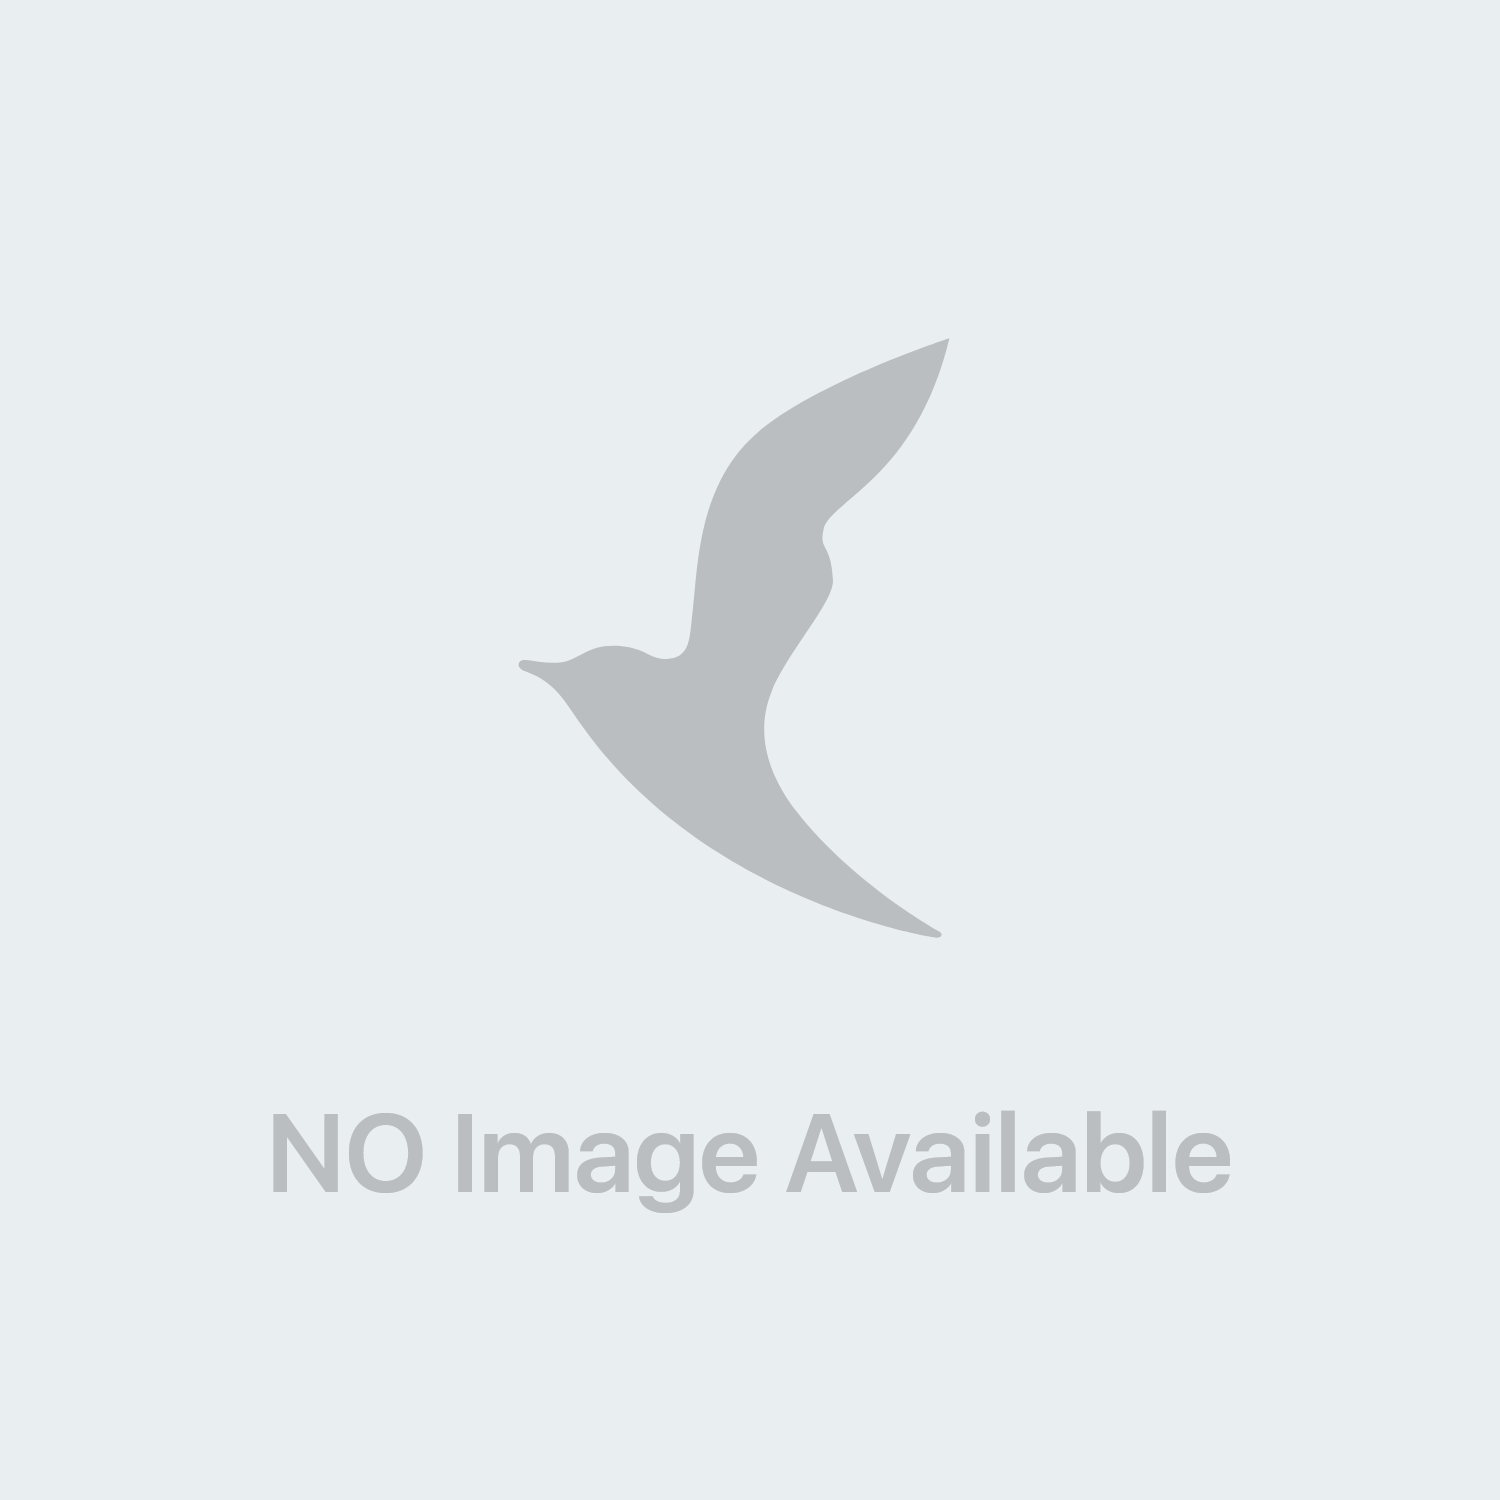 Negatol 7 Ovuli Vaginali 0,1 gr Con Applicatori